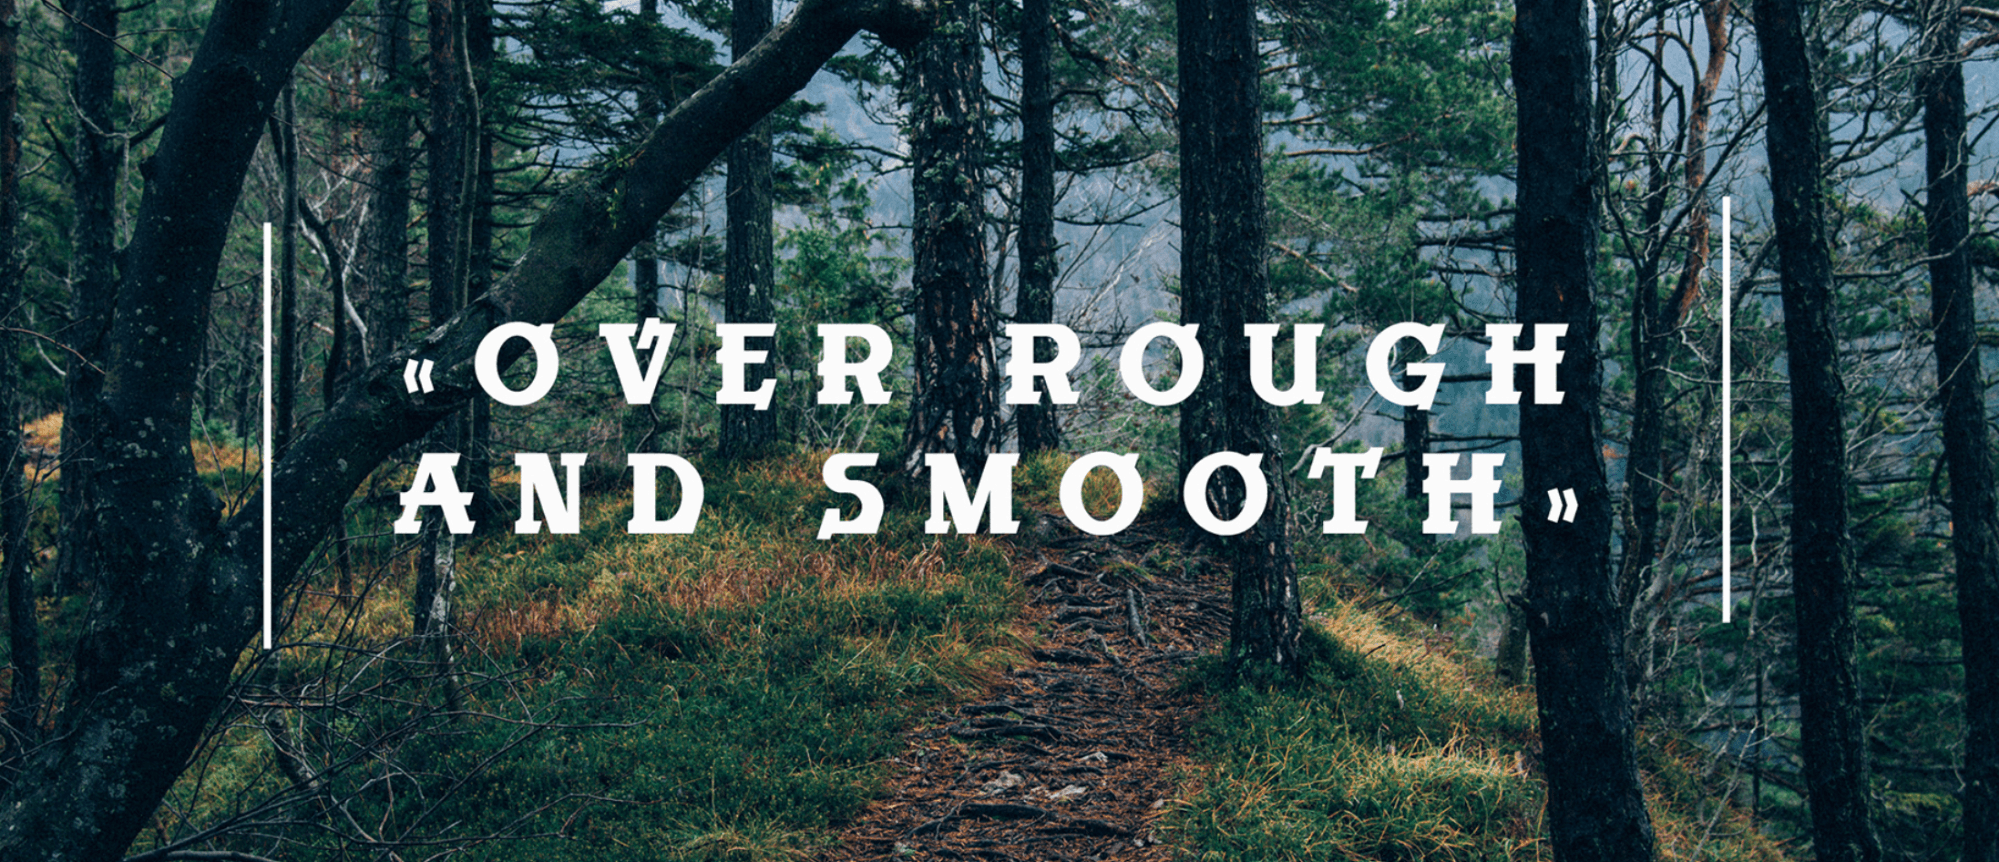 Free commercial typeface. This font is Wanderlust